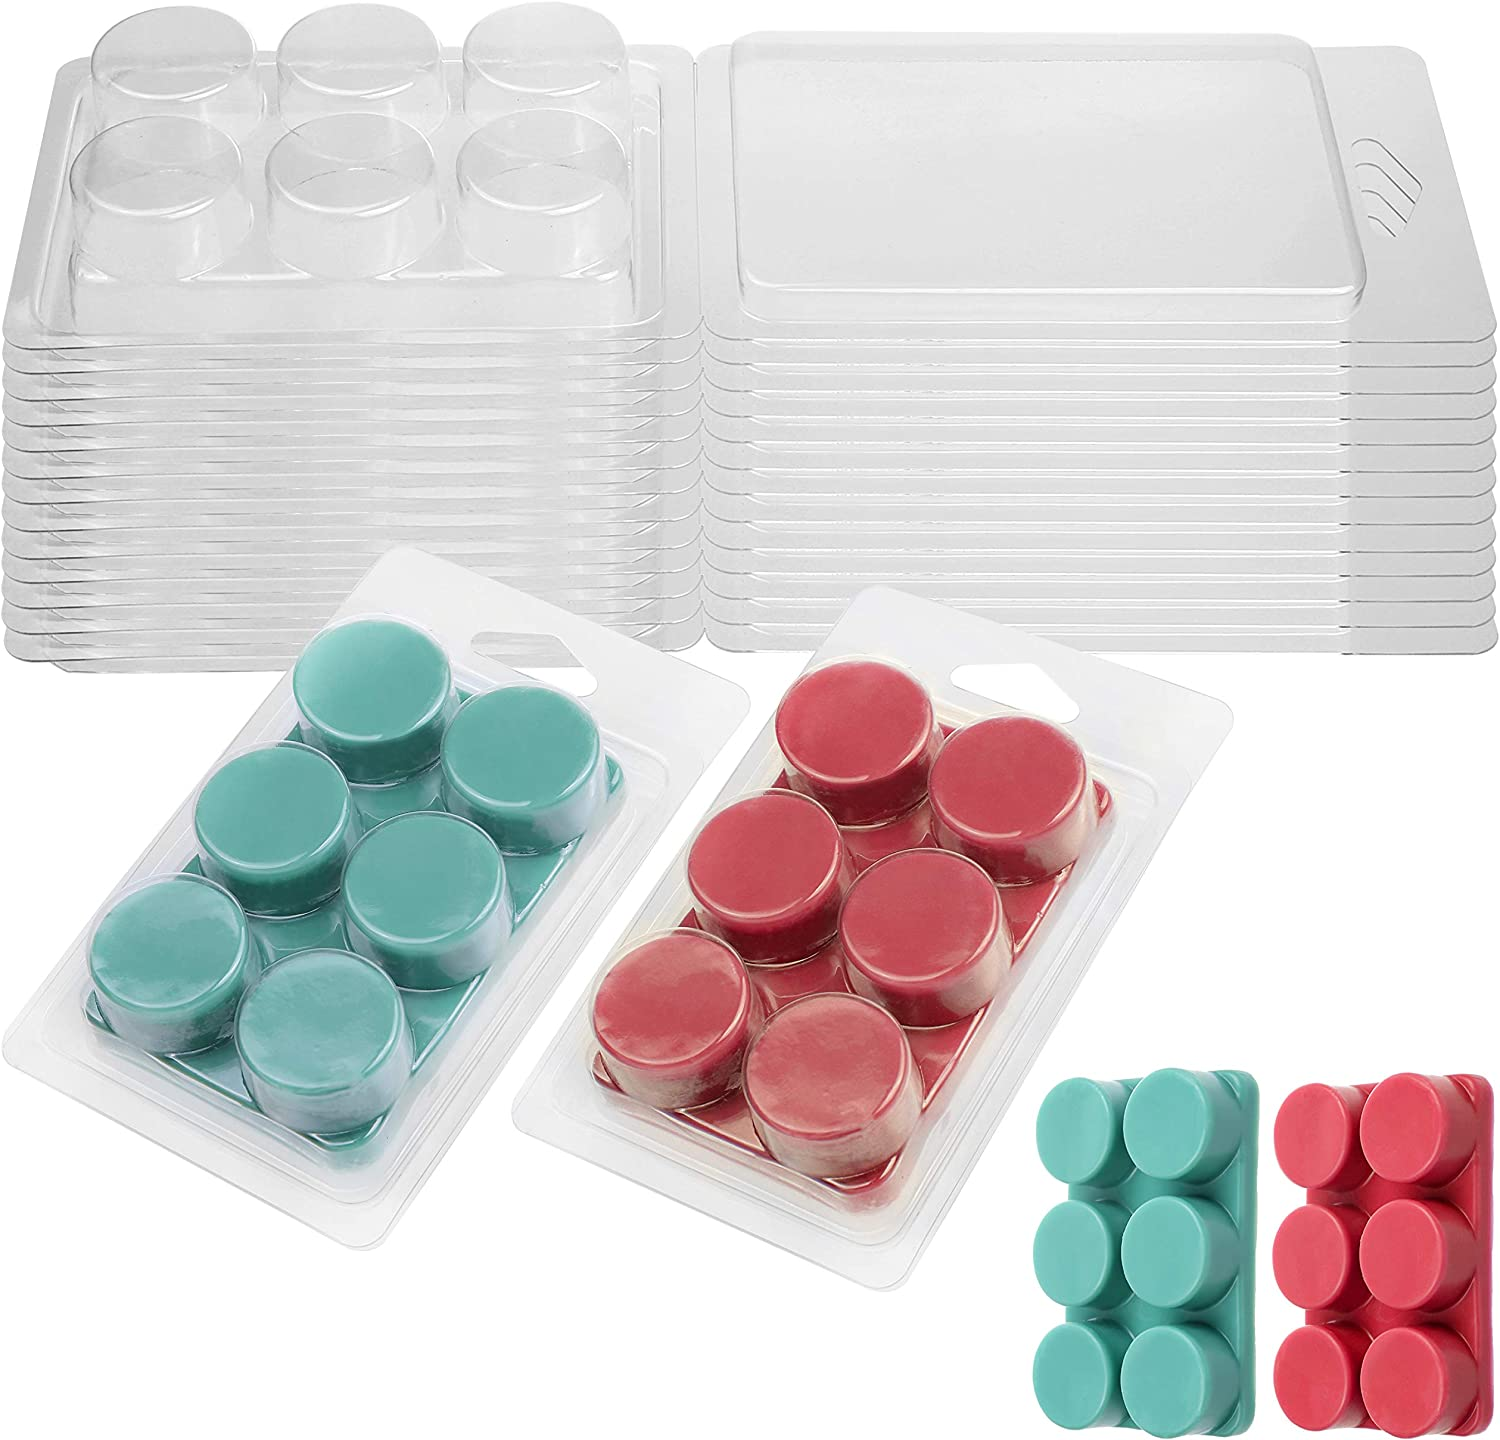 Wax Melt Containers-6 Cavity Clear Empty Plastic Wax Melt Molds-100 Packs Round Clamshells for Tarts Wax Melts.